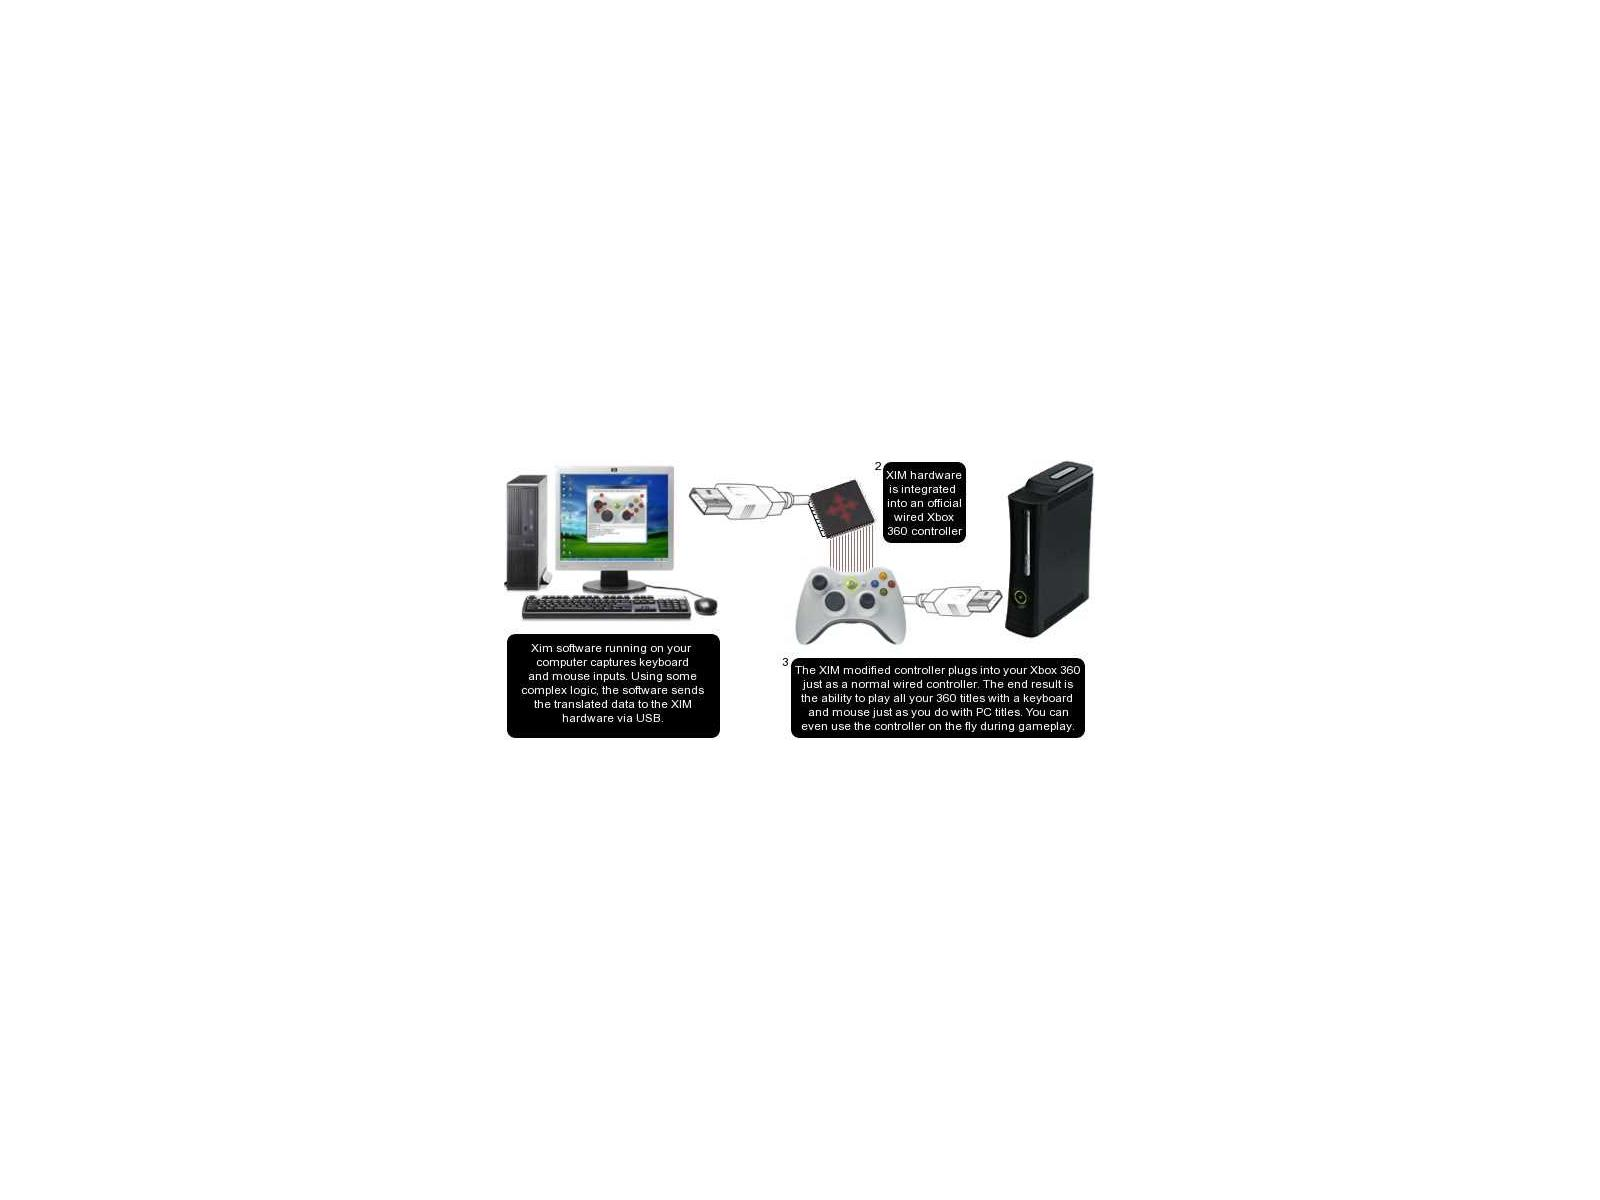 XIM360 to Bring Keyboard / Mouse to Xbox360 | HotHardware